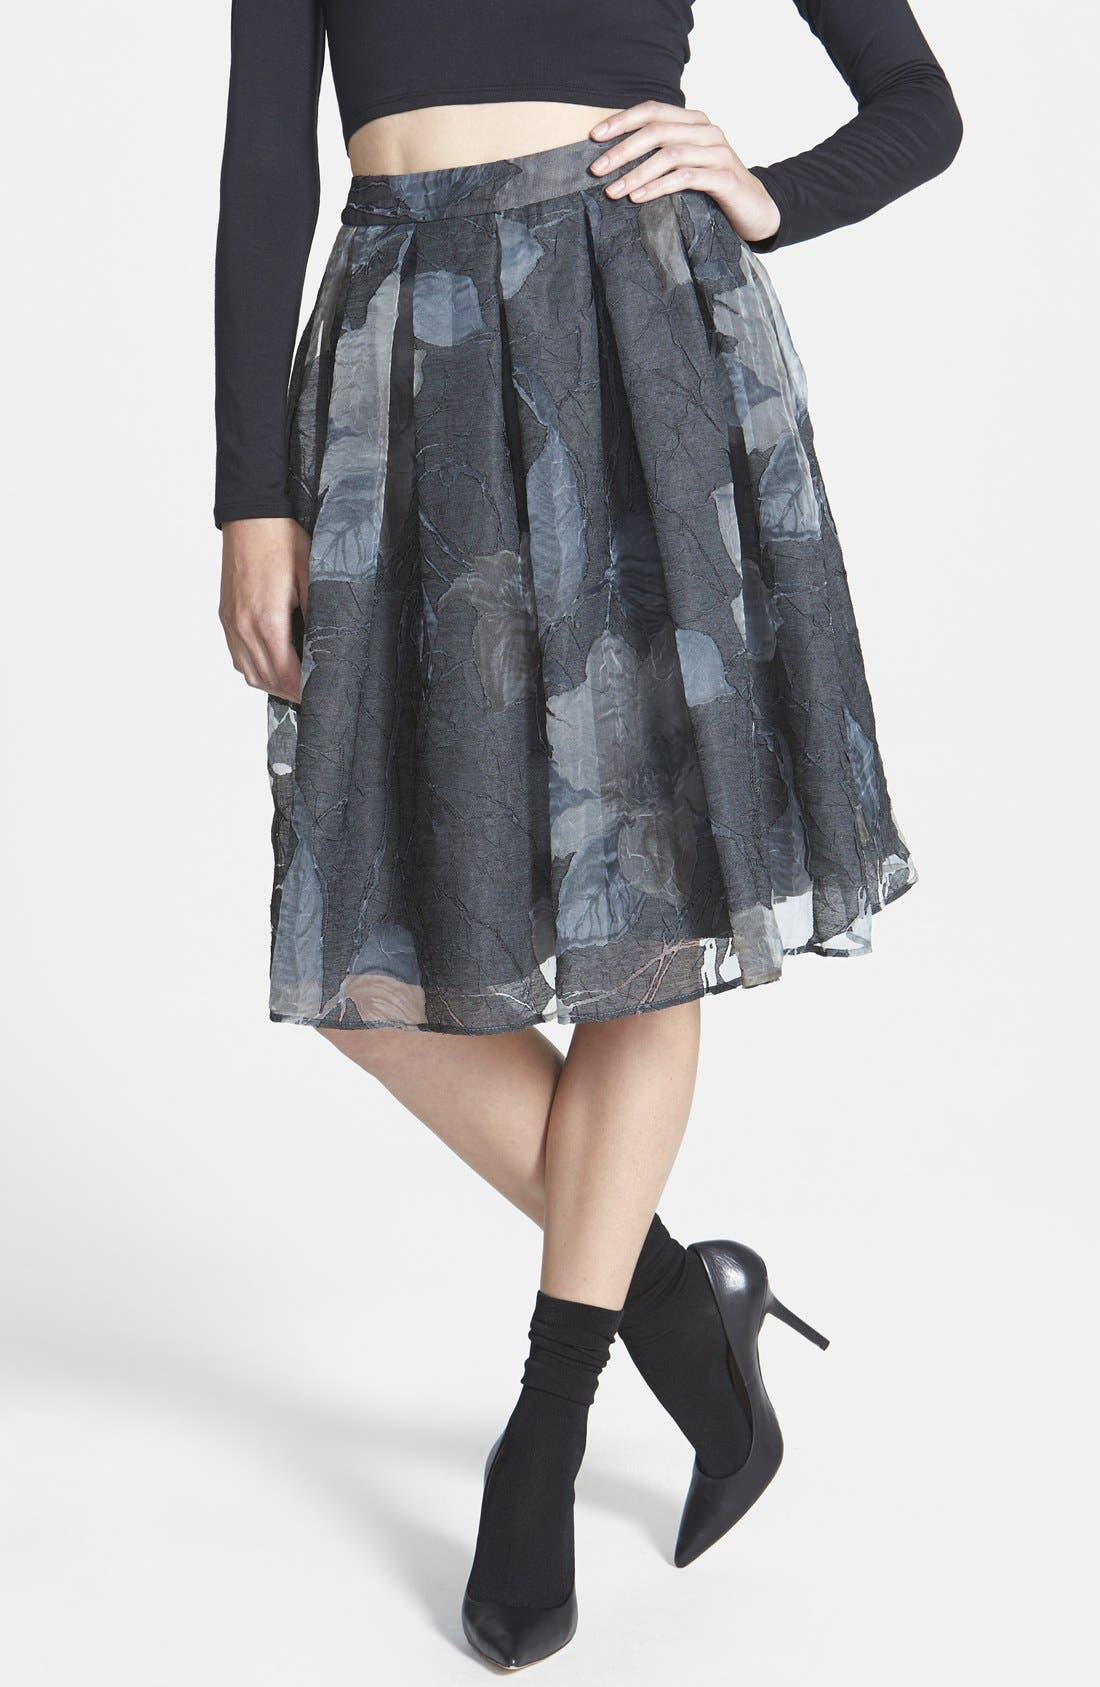 Alternate Image 1 Selected - ASTR Floral Jacquard Midi Skirt